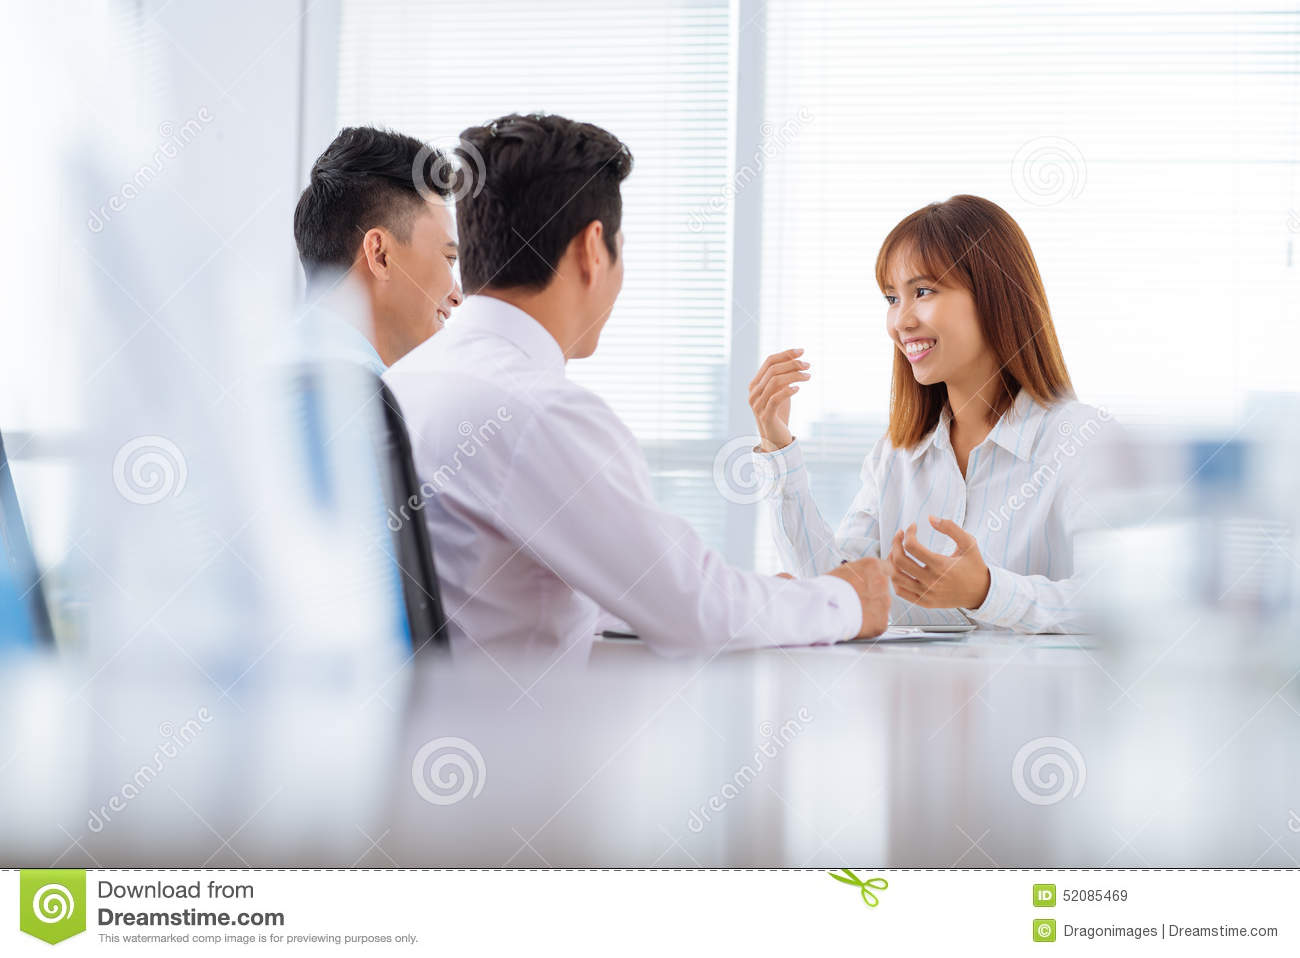 Became hysterical interview job one them